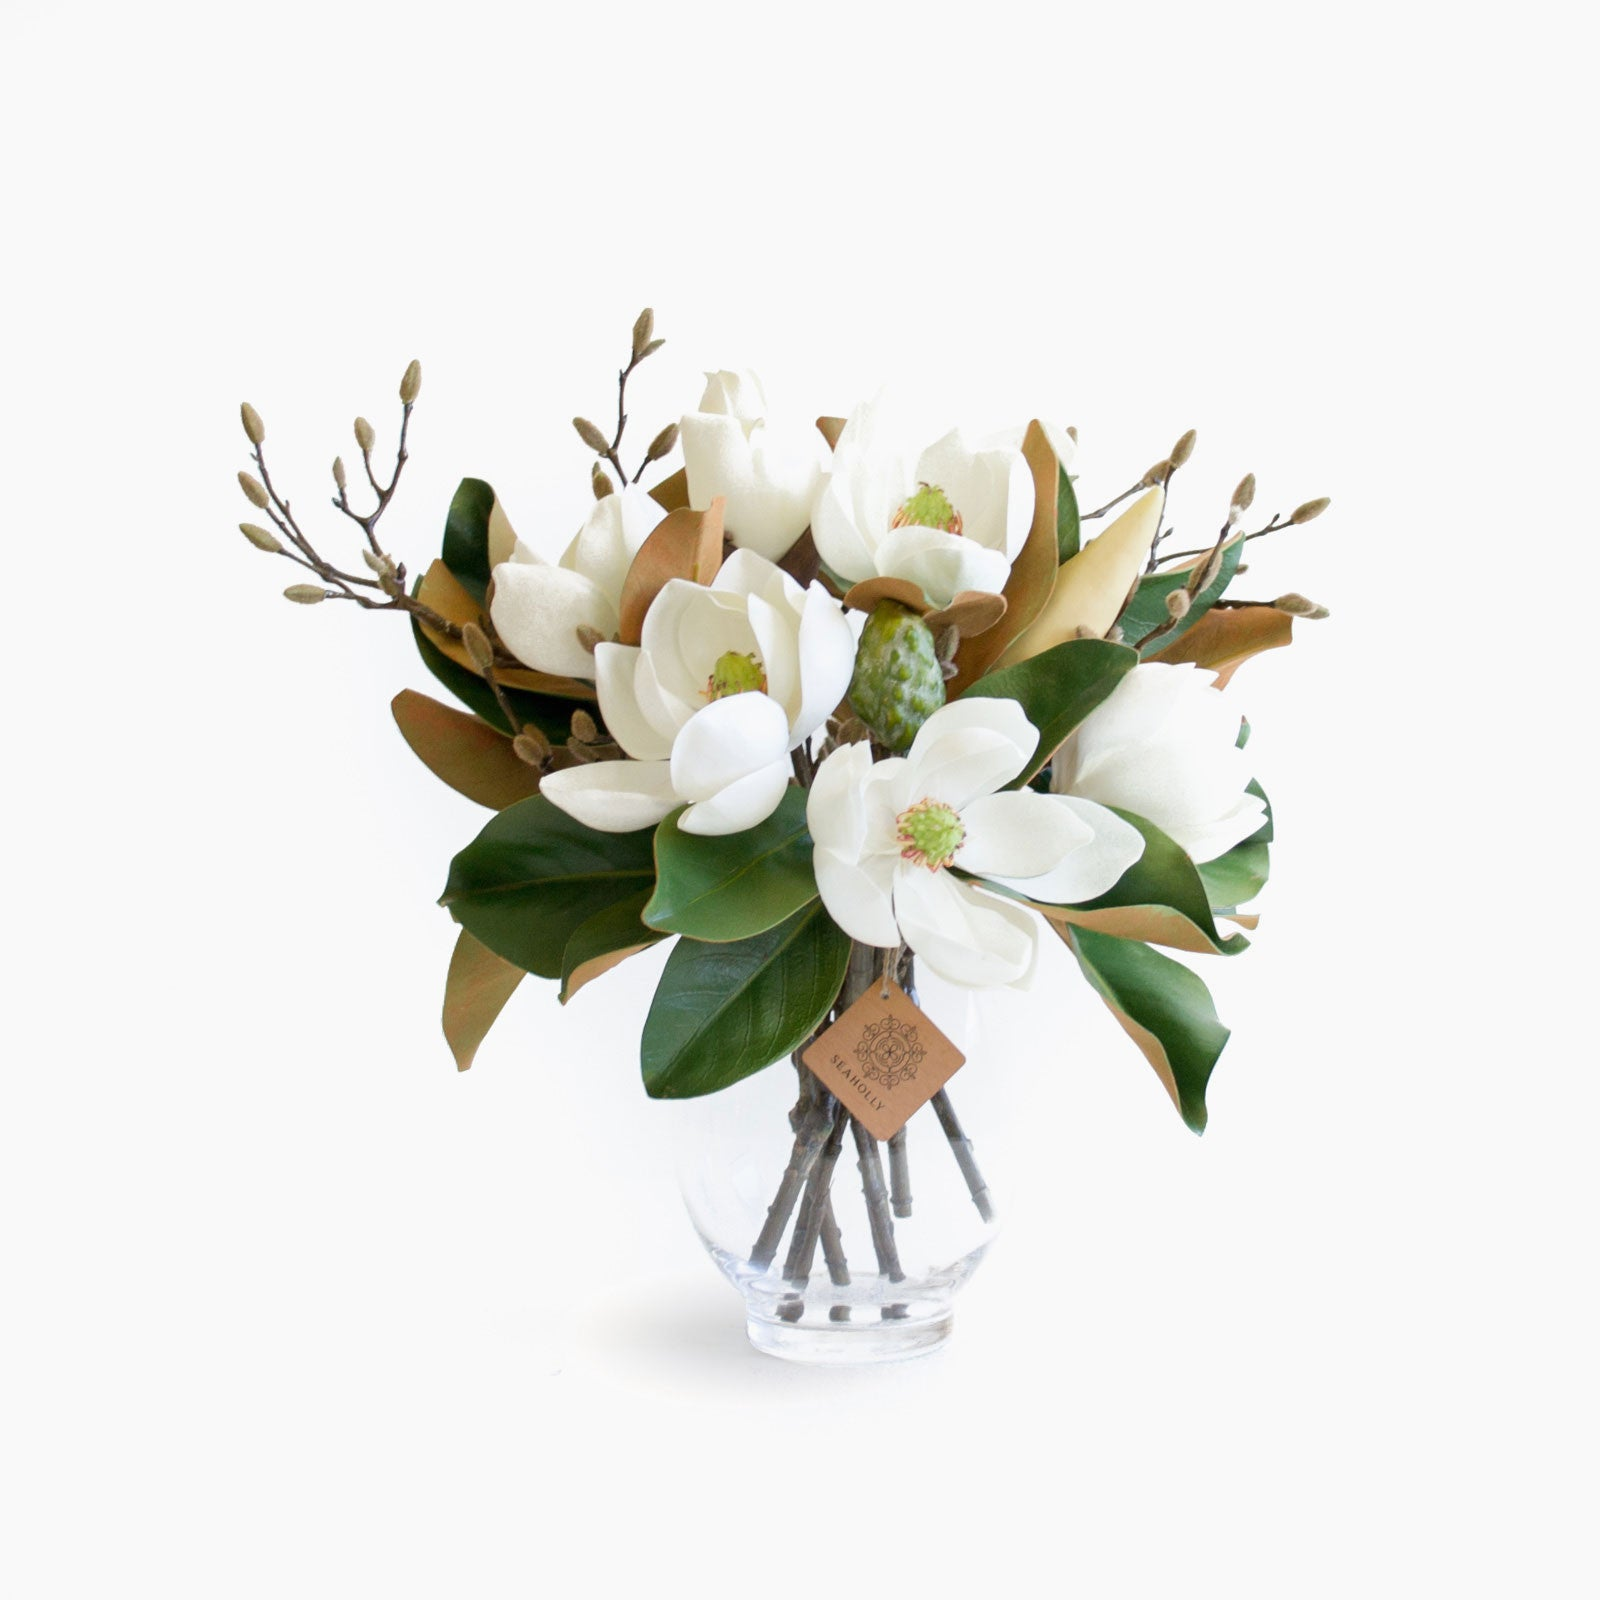 Artificial magnolia and budding branch bouquet